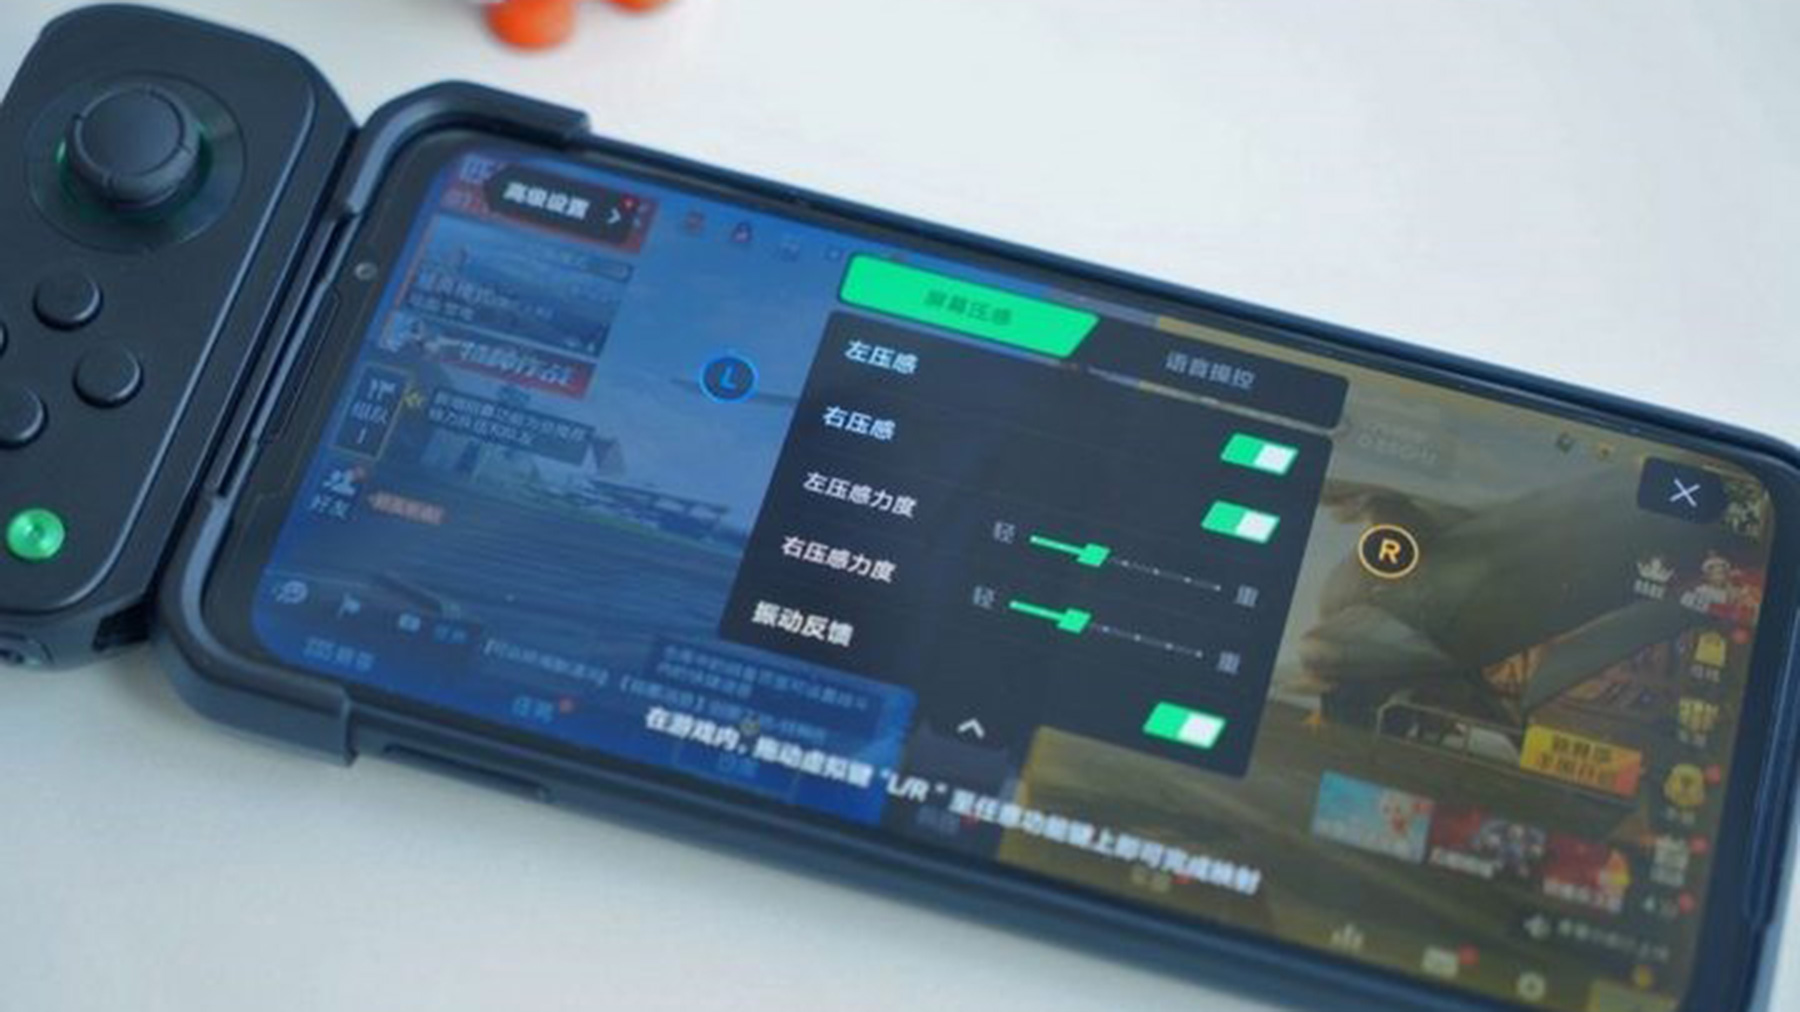 High refresh rate screen popular, game mobile phone concept is still established 5